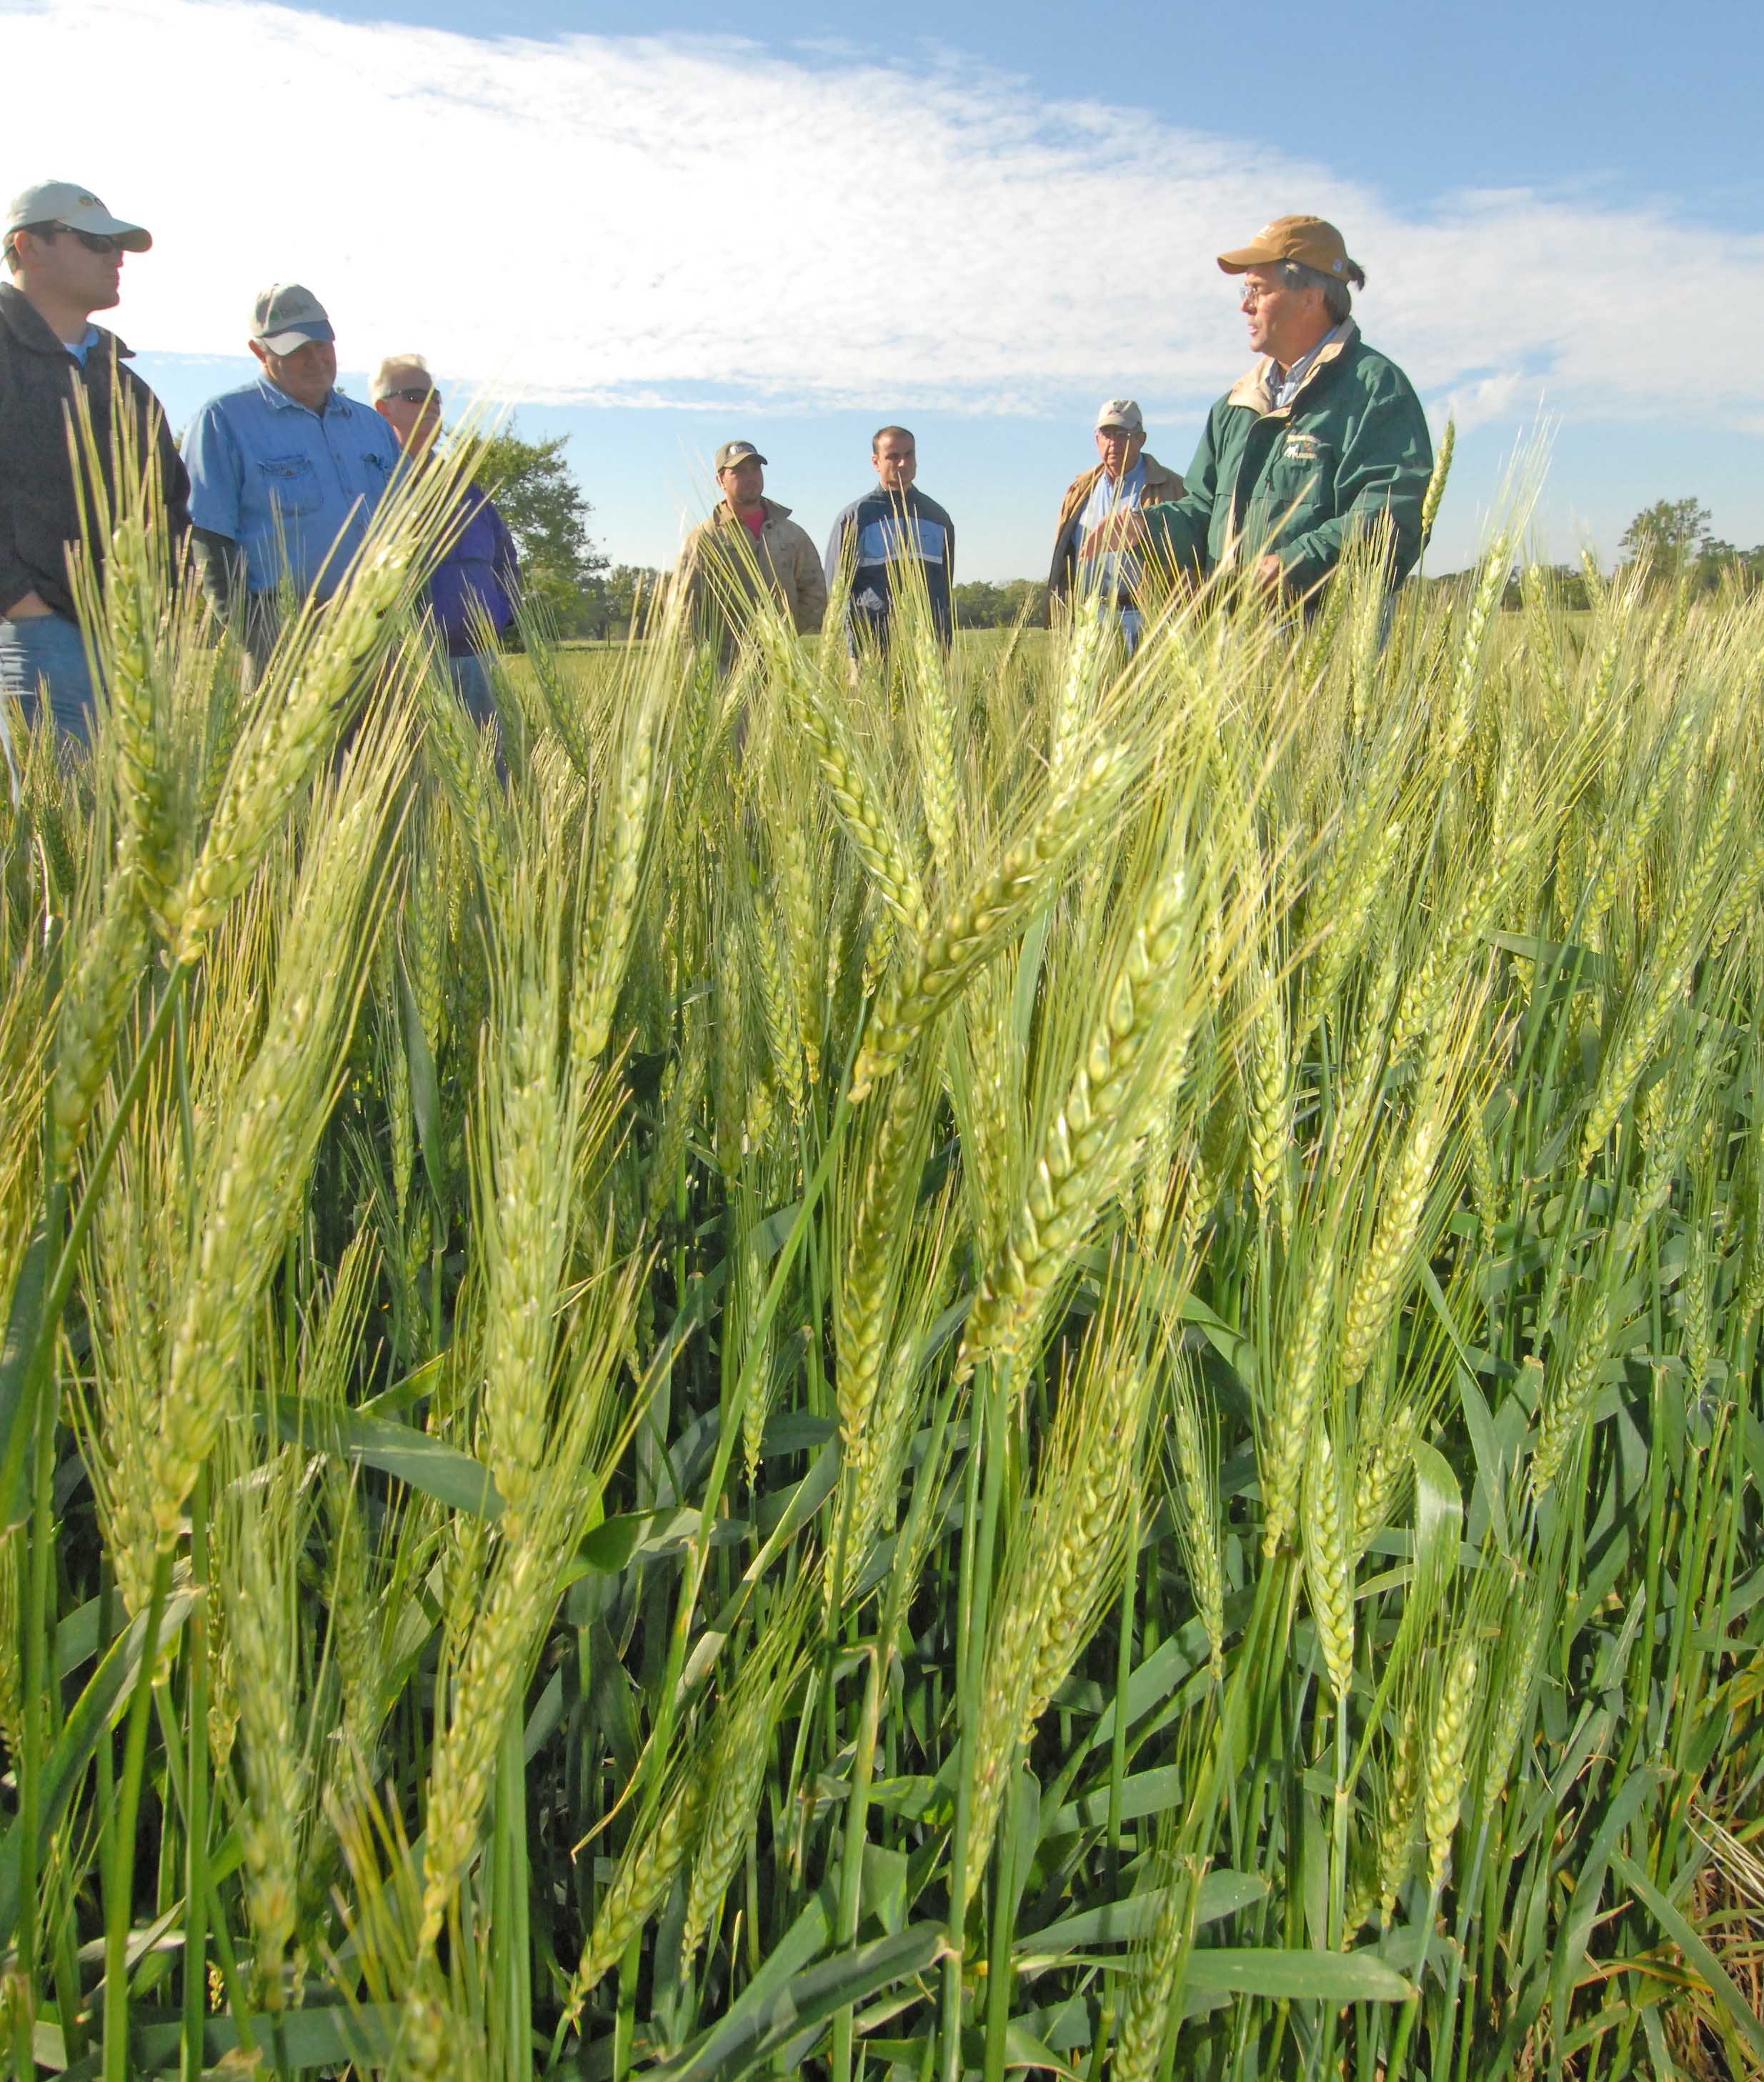 Sugarcane farmers weigh wheat as rotation crop to control weeds, slow erosion